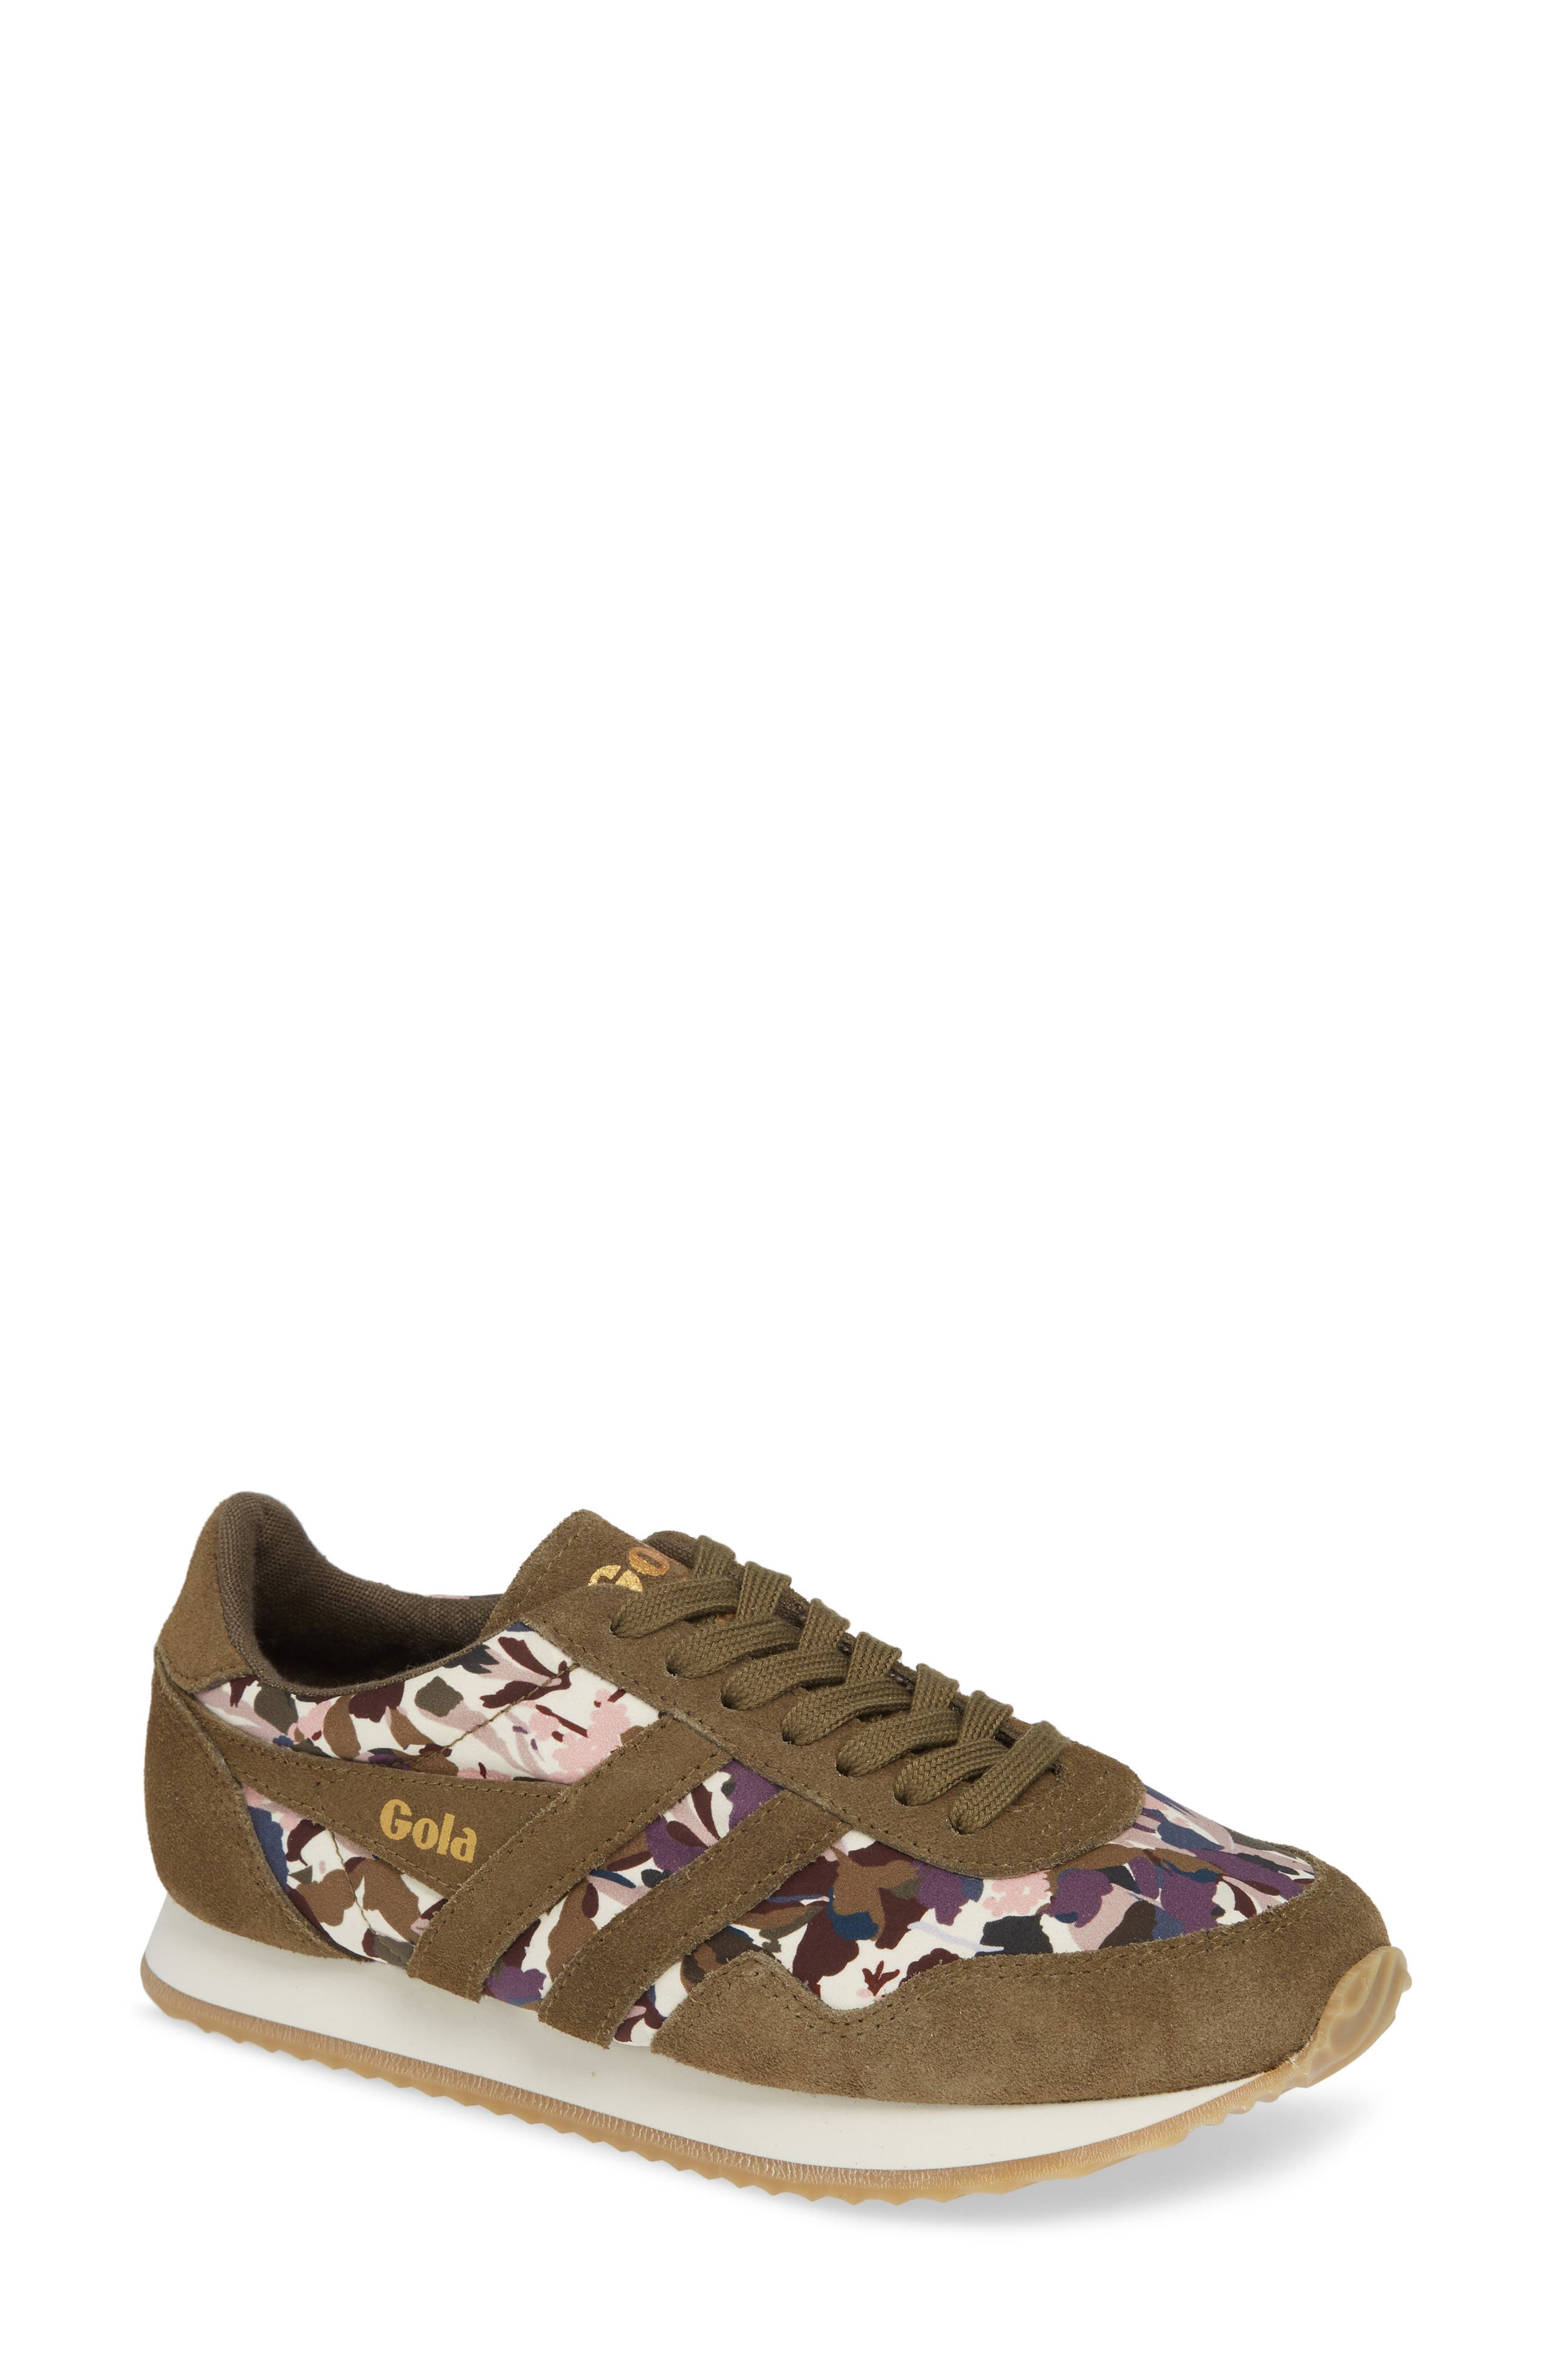 GOLA X Liberty Fabrics Collection Bullet Sneaker in Khaki/ Off White